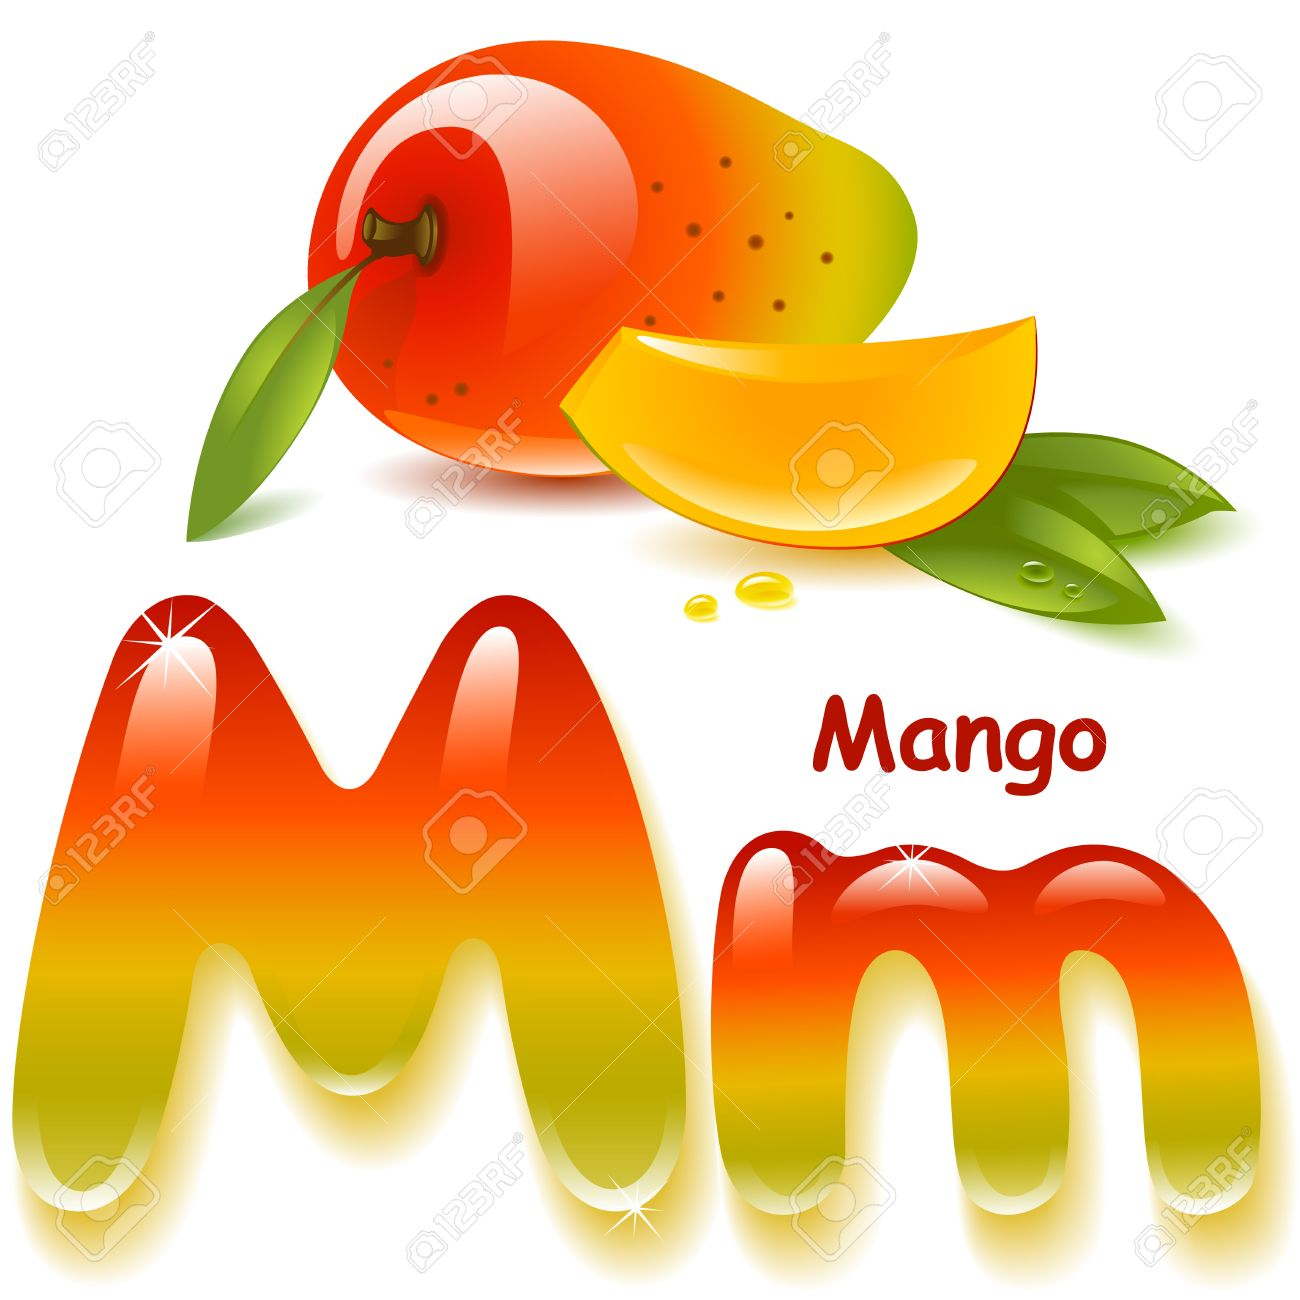 Alphabet. English capital and uppercase letter M, stylized color of mango juice. mango with leaf and slices. vector illustration - 39123043